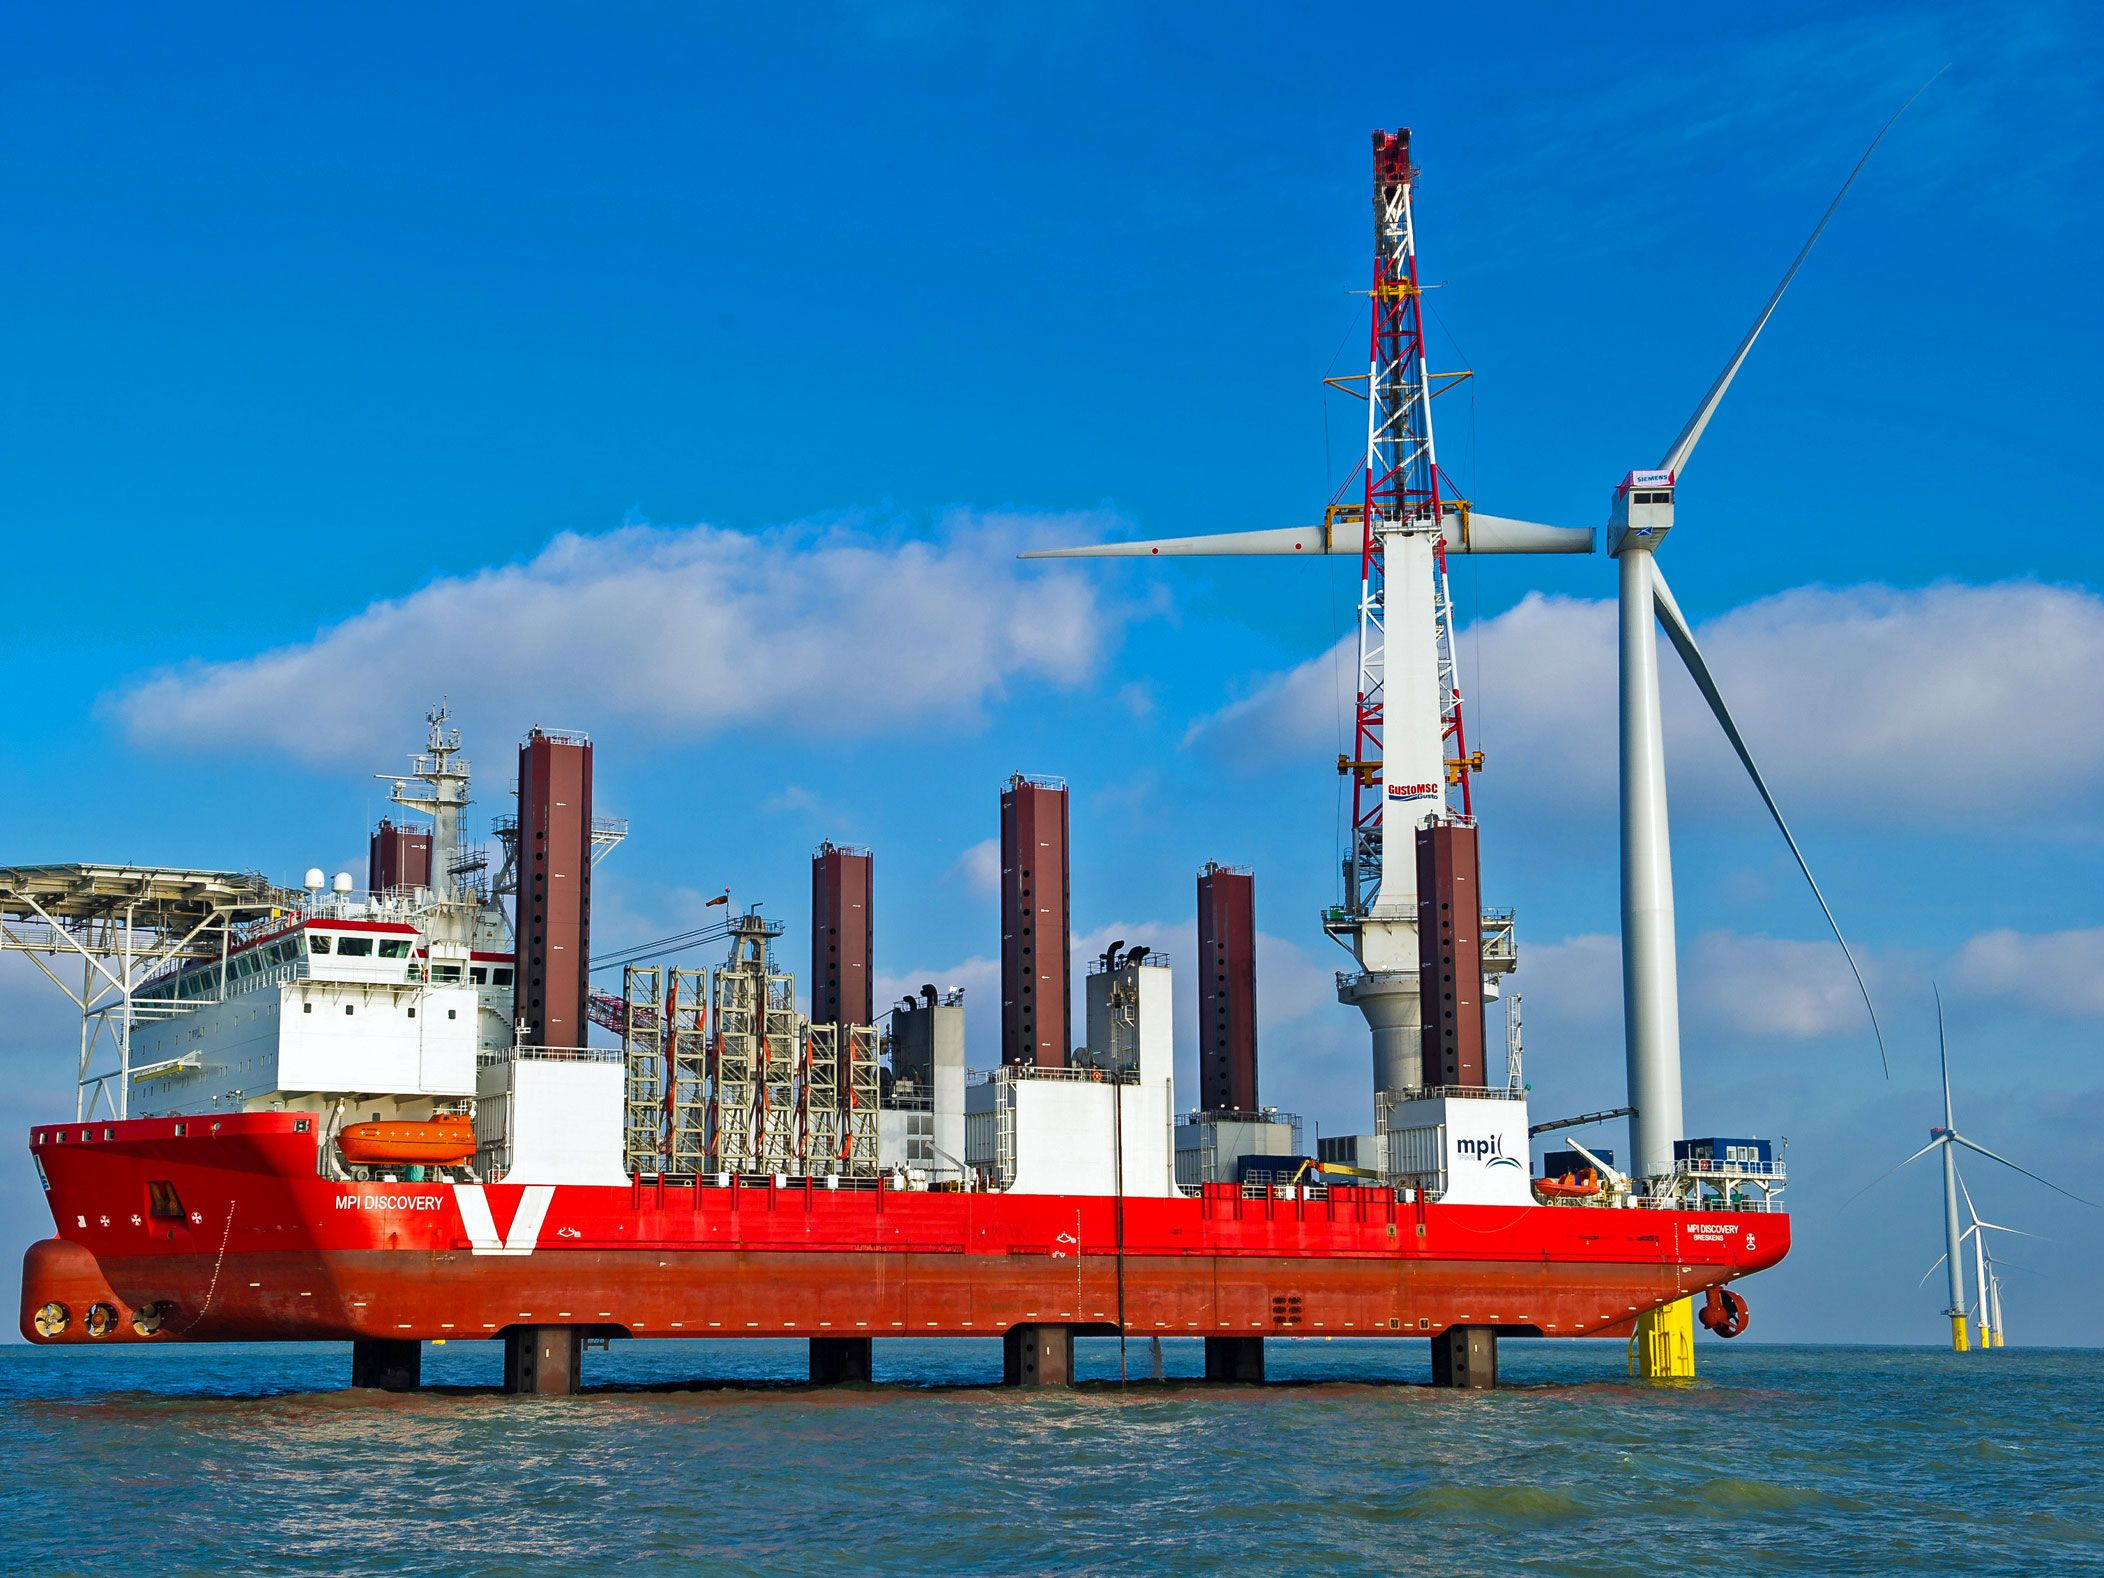 World's Biggest Offshore Wind Farm Switched On in Britain